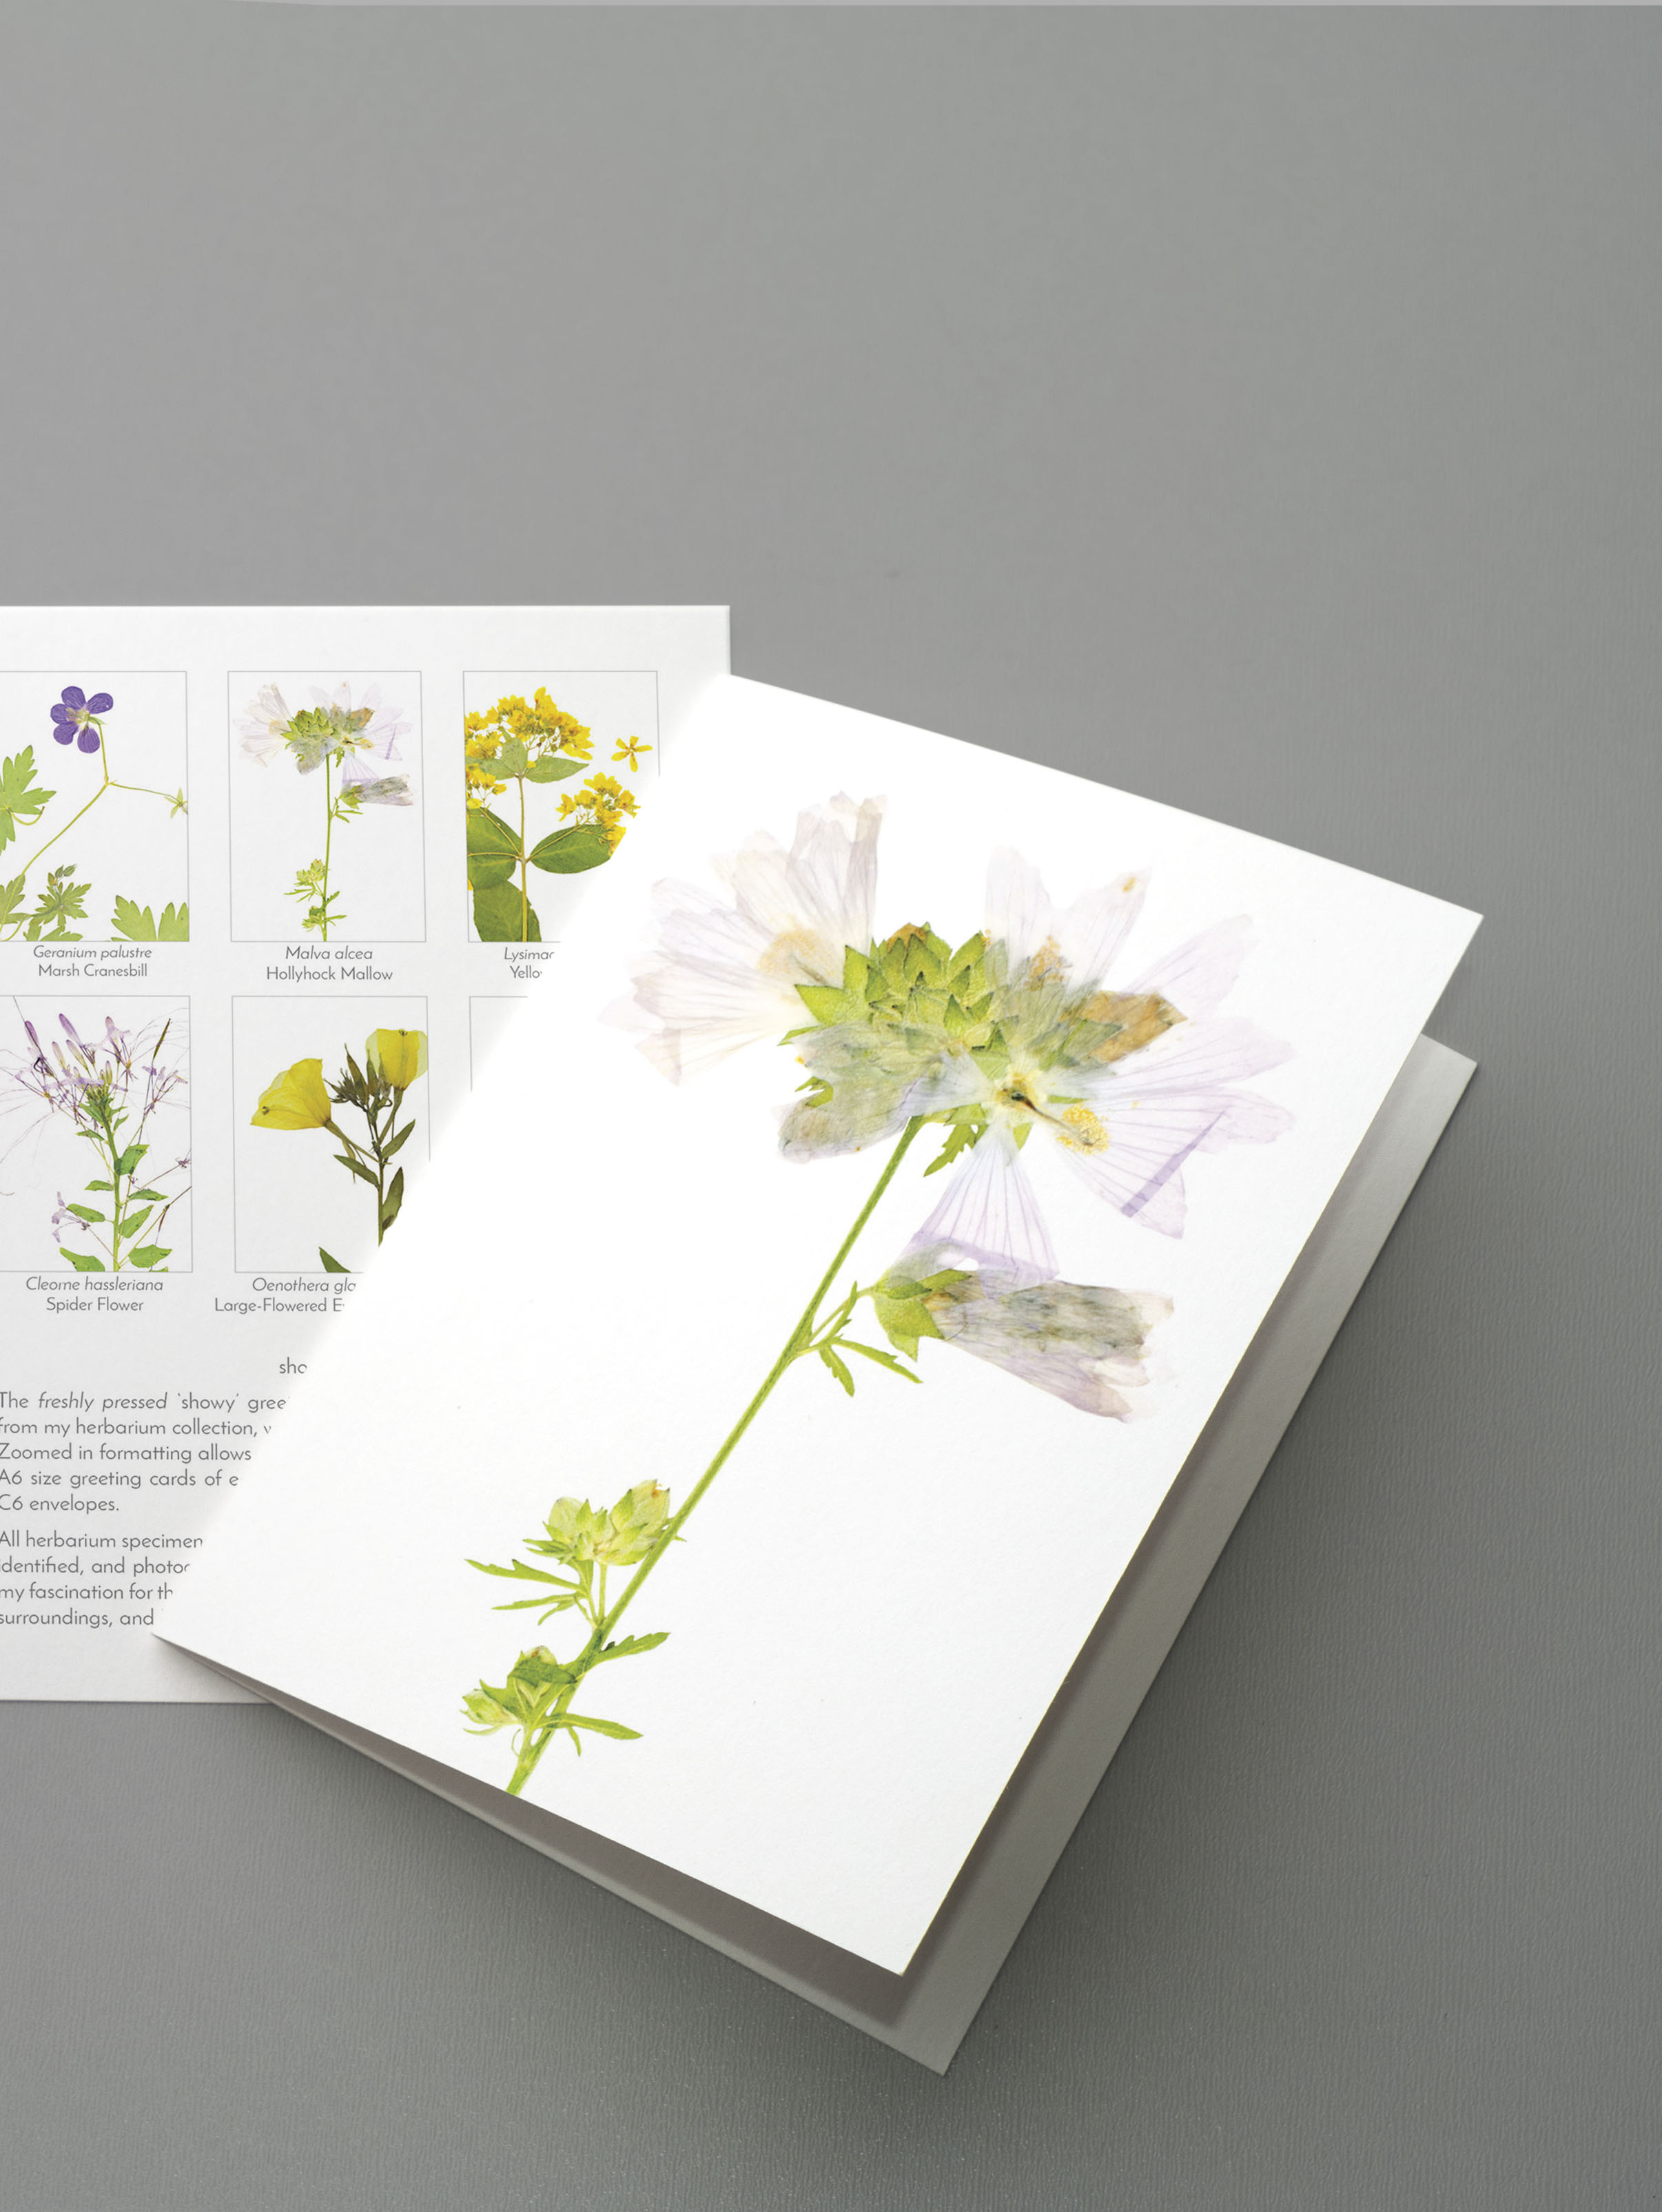 greeting cards - All-occasion greeting cards are the perfect botanical pick-me-up. Choose your favorite theme for a 12-pack of blank greeting cards, featuring selected plants from my herbarium collection and paired with elegant envelopes.